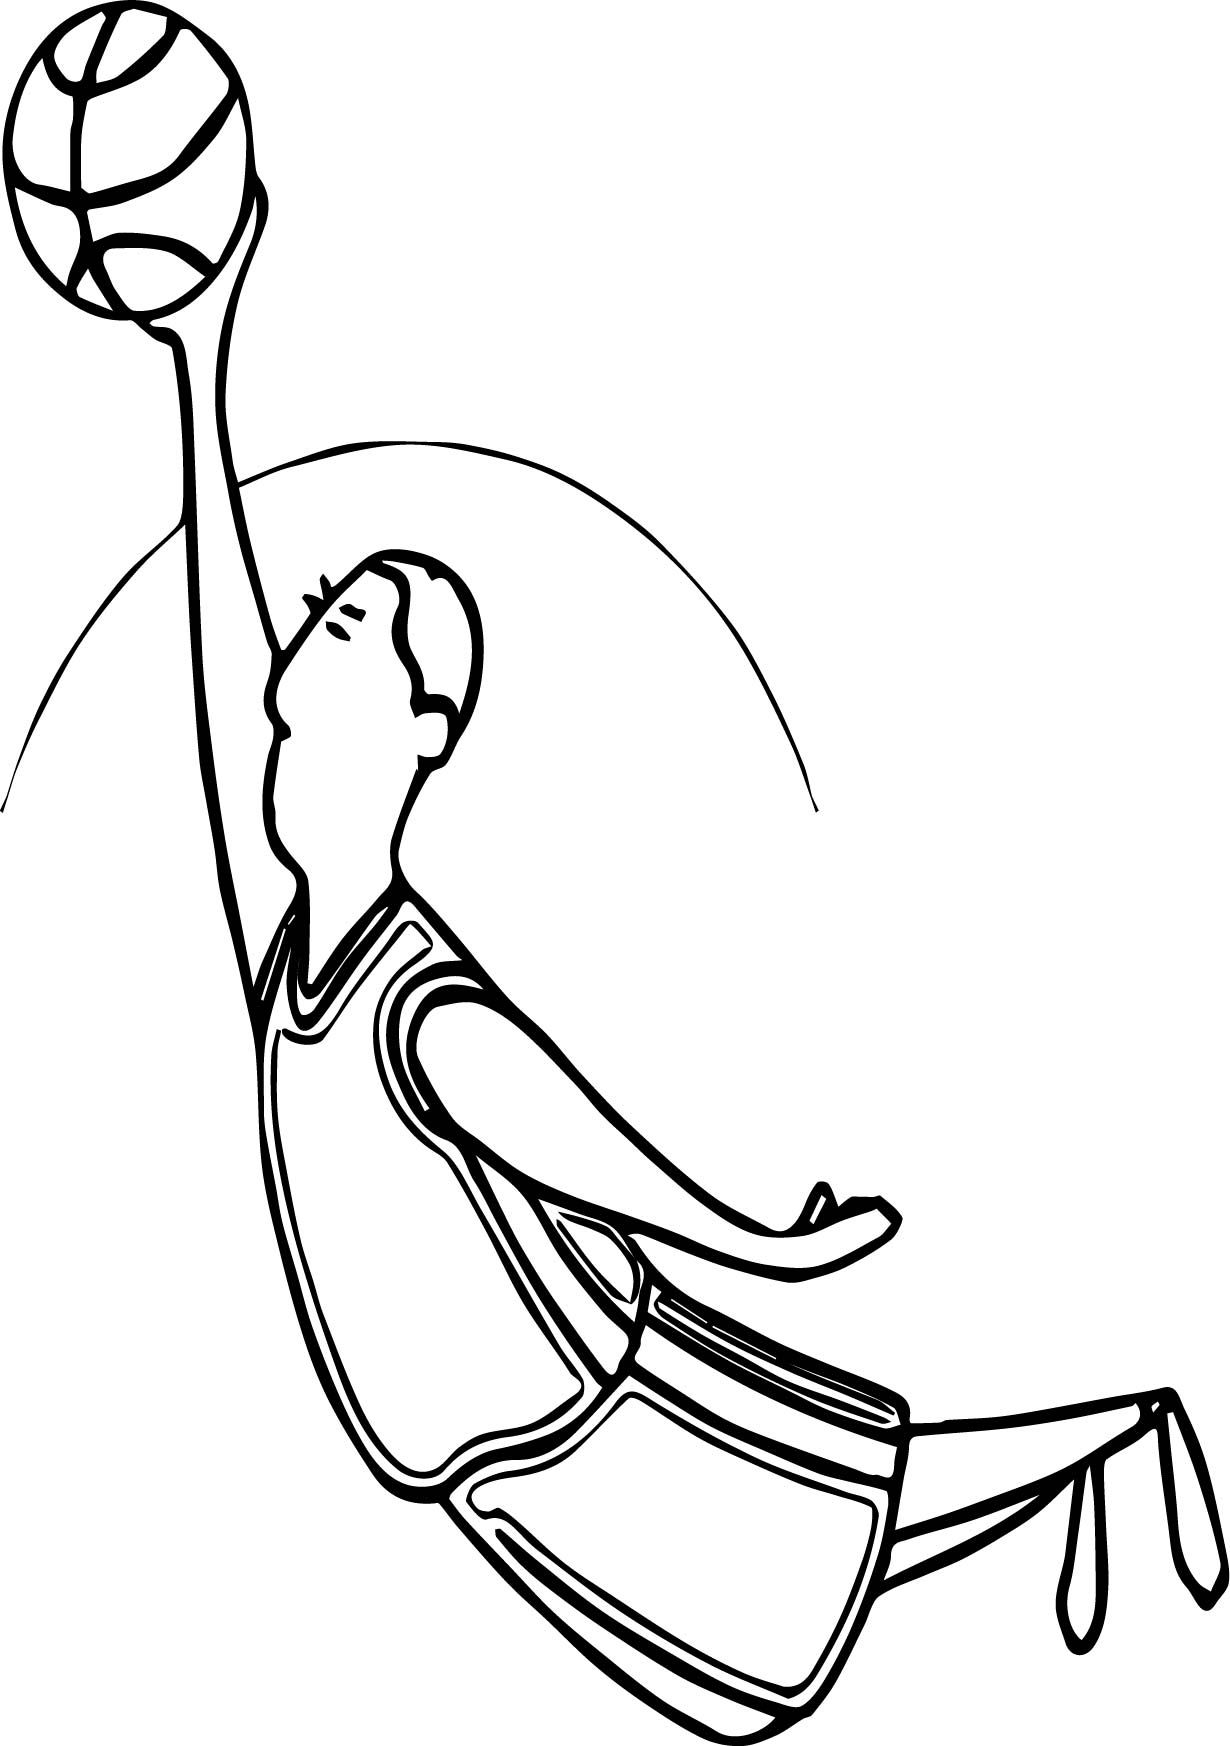 Nice Playing Basketball Jump Man Coloring Page Sports Coloring Pages Football Coloring Pages Baseball Coloring Pages